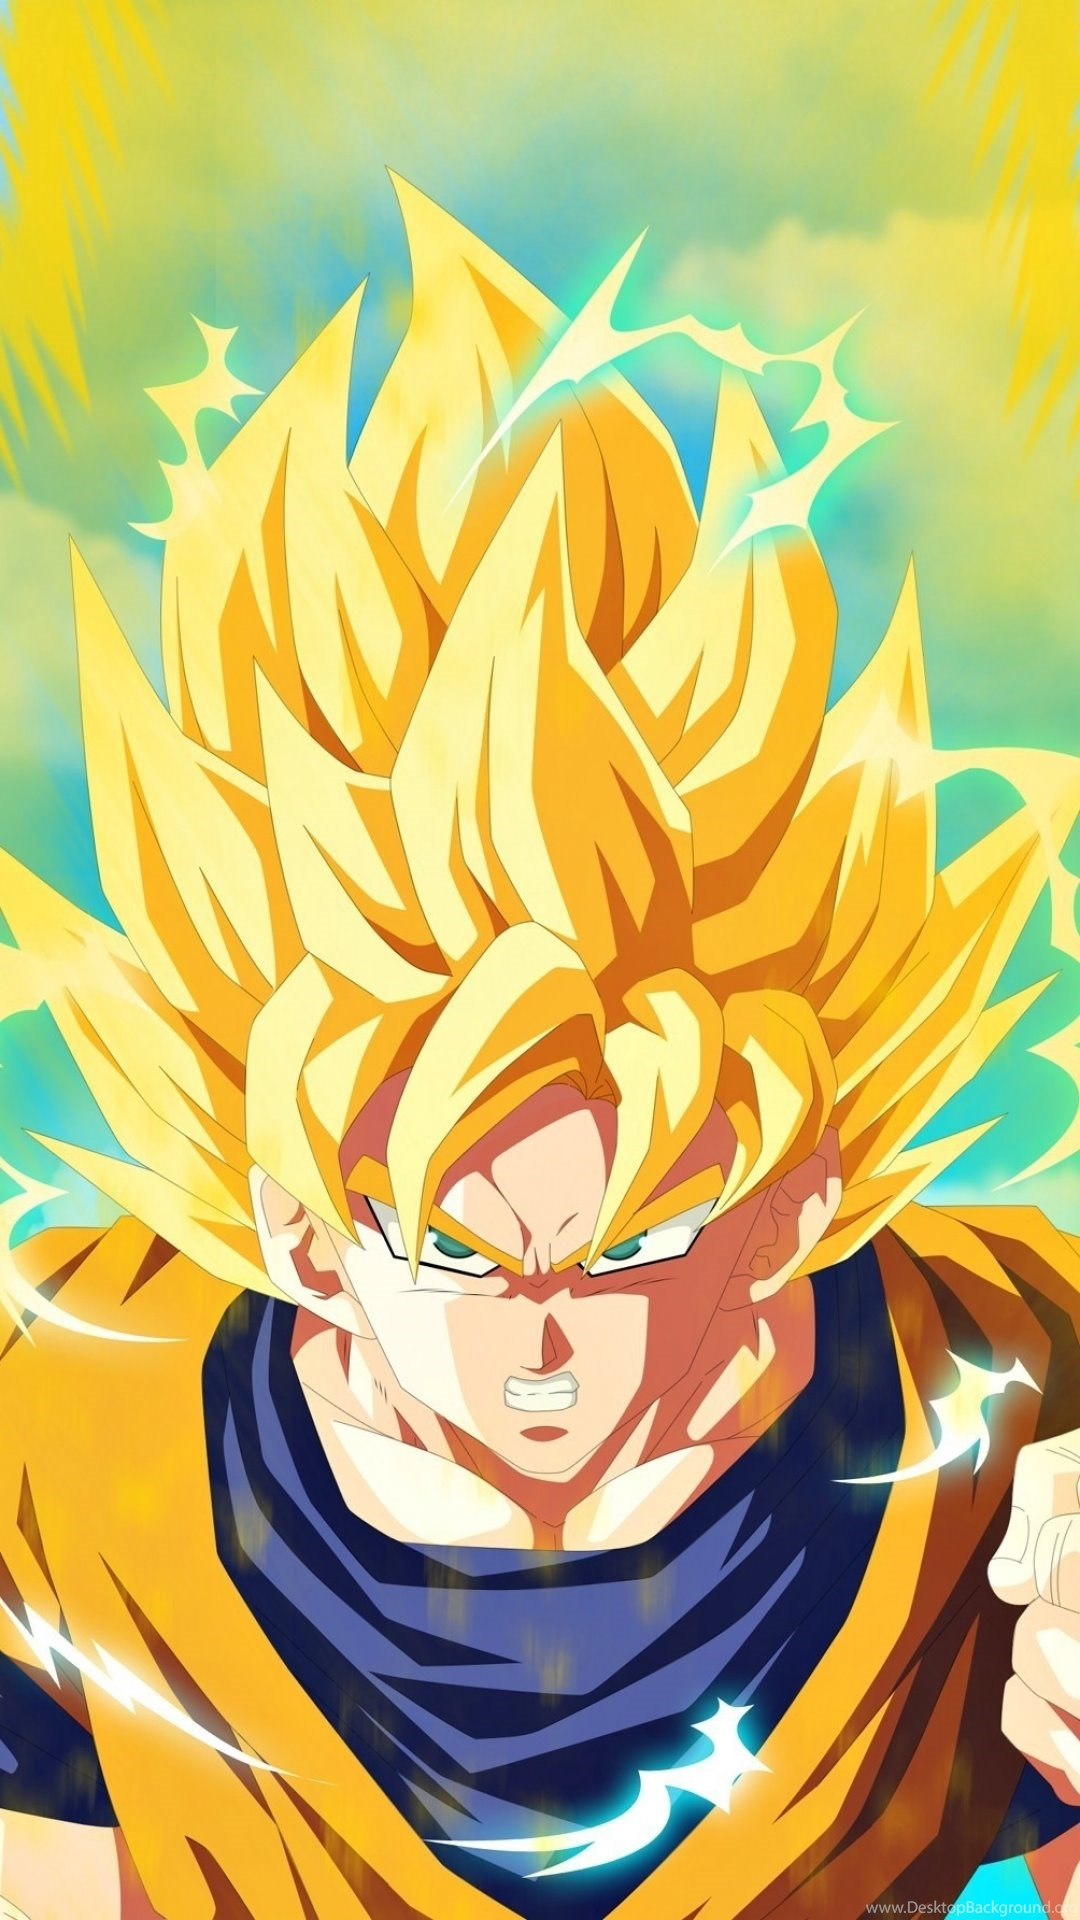 Iphone 6 plus animedragon ball z wallpapers id 591958 desktop original size 2477kb voltagebd Image collections